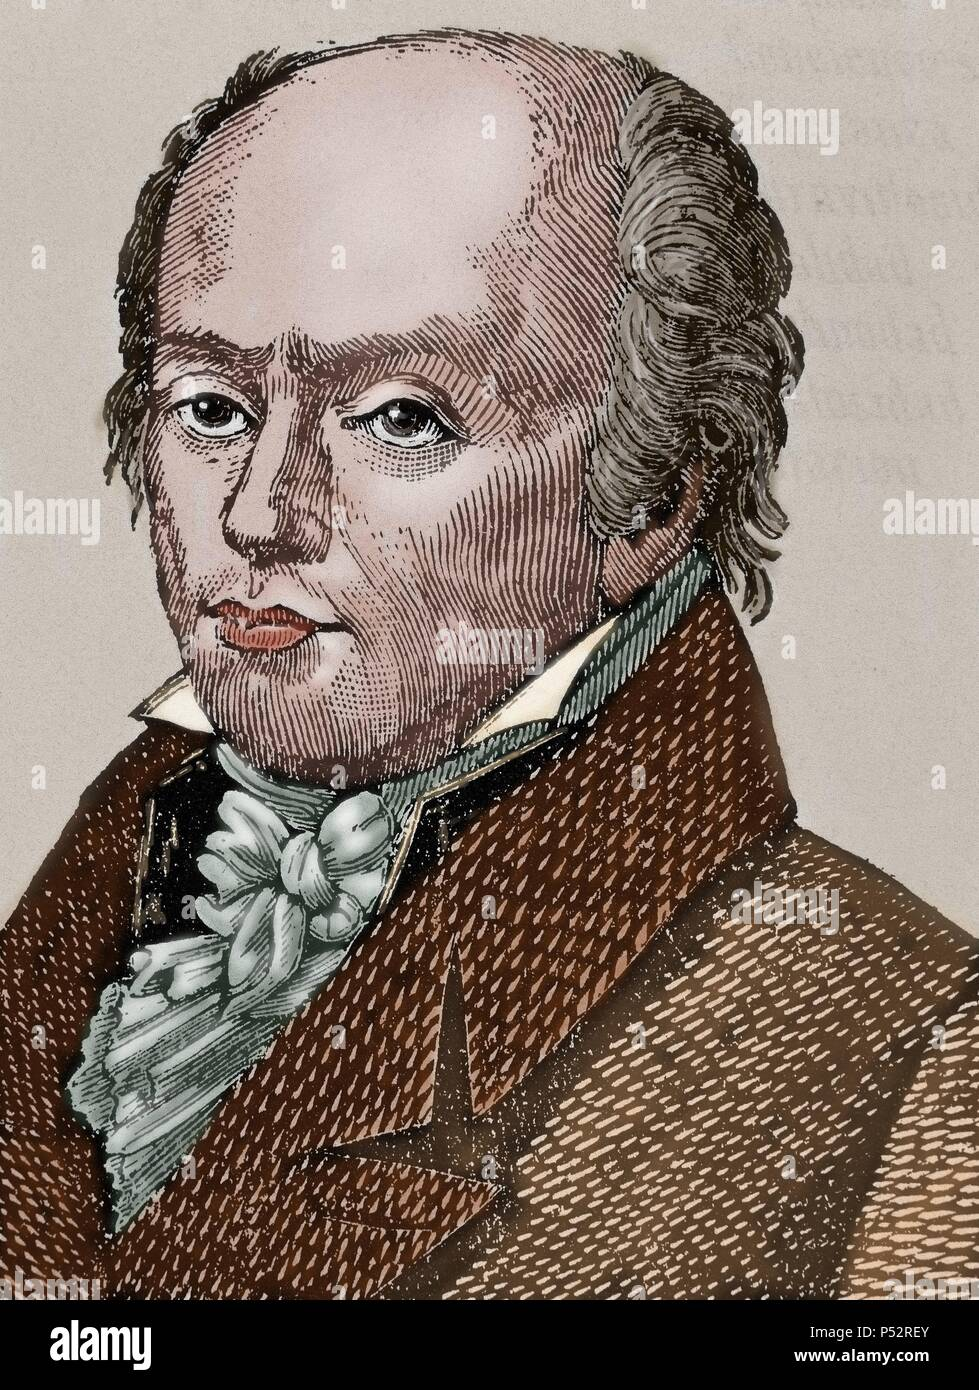 Franz Joseph Gall (1758 -1828). Neuroanatomist, physiologist, and pioneer in the study of the localization of mental functions in the brain. Colored engraving. - Stock Image